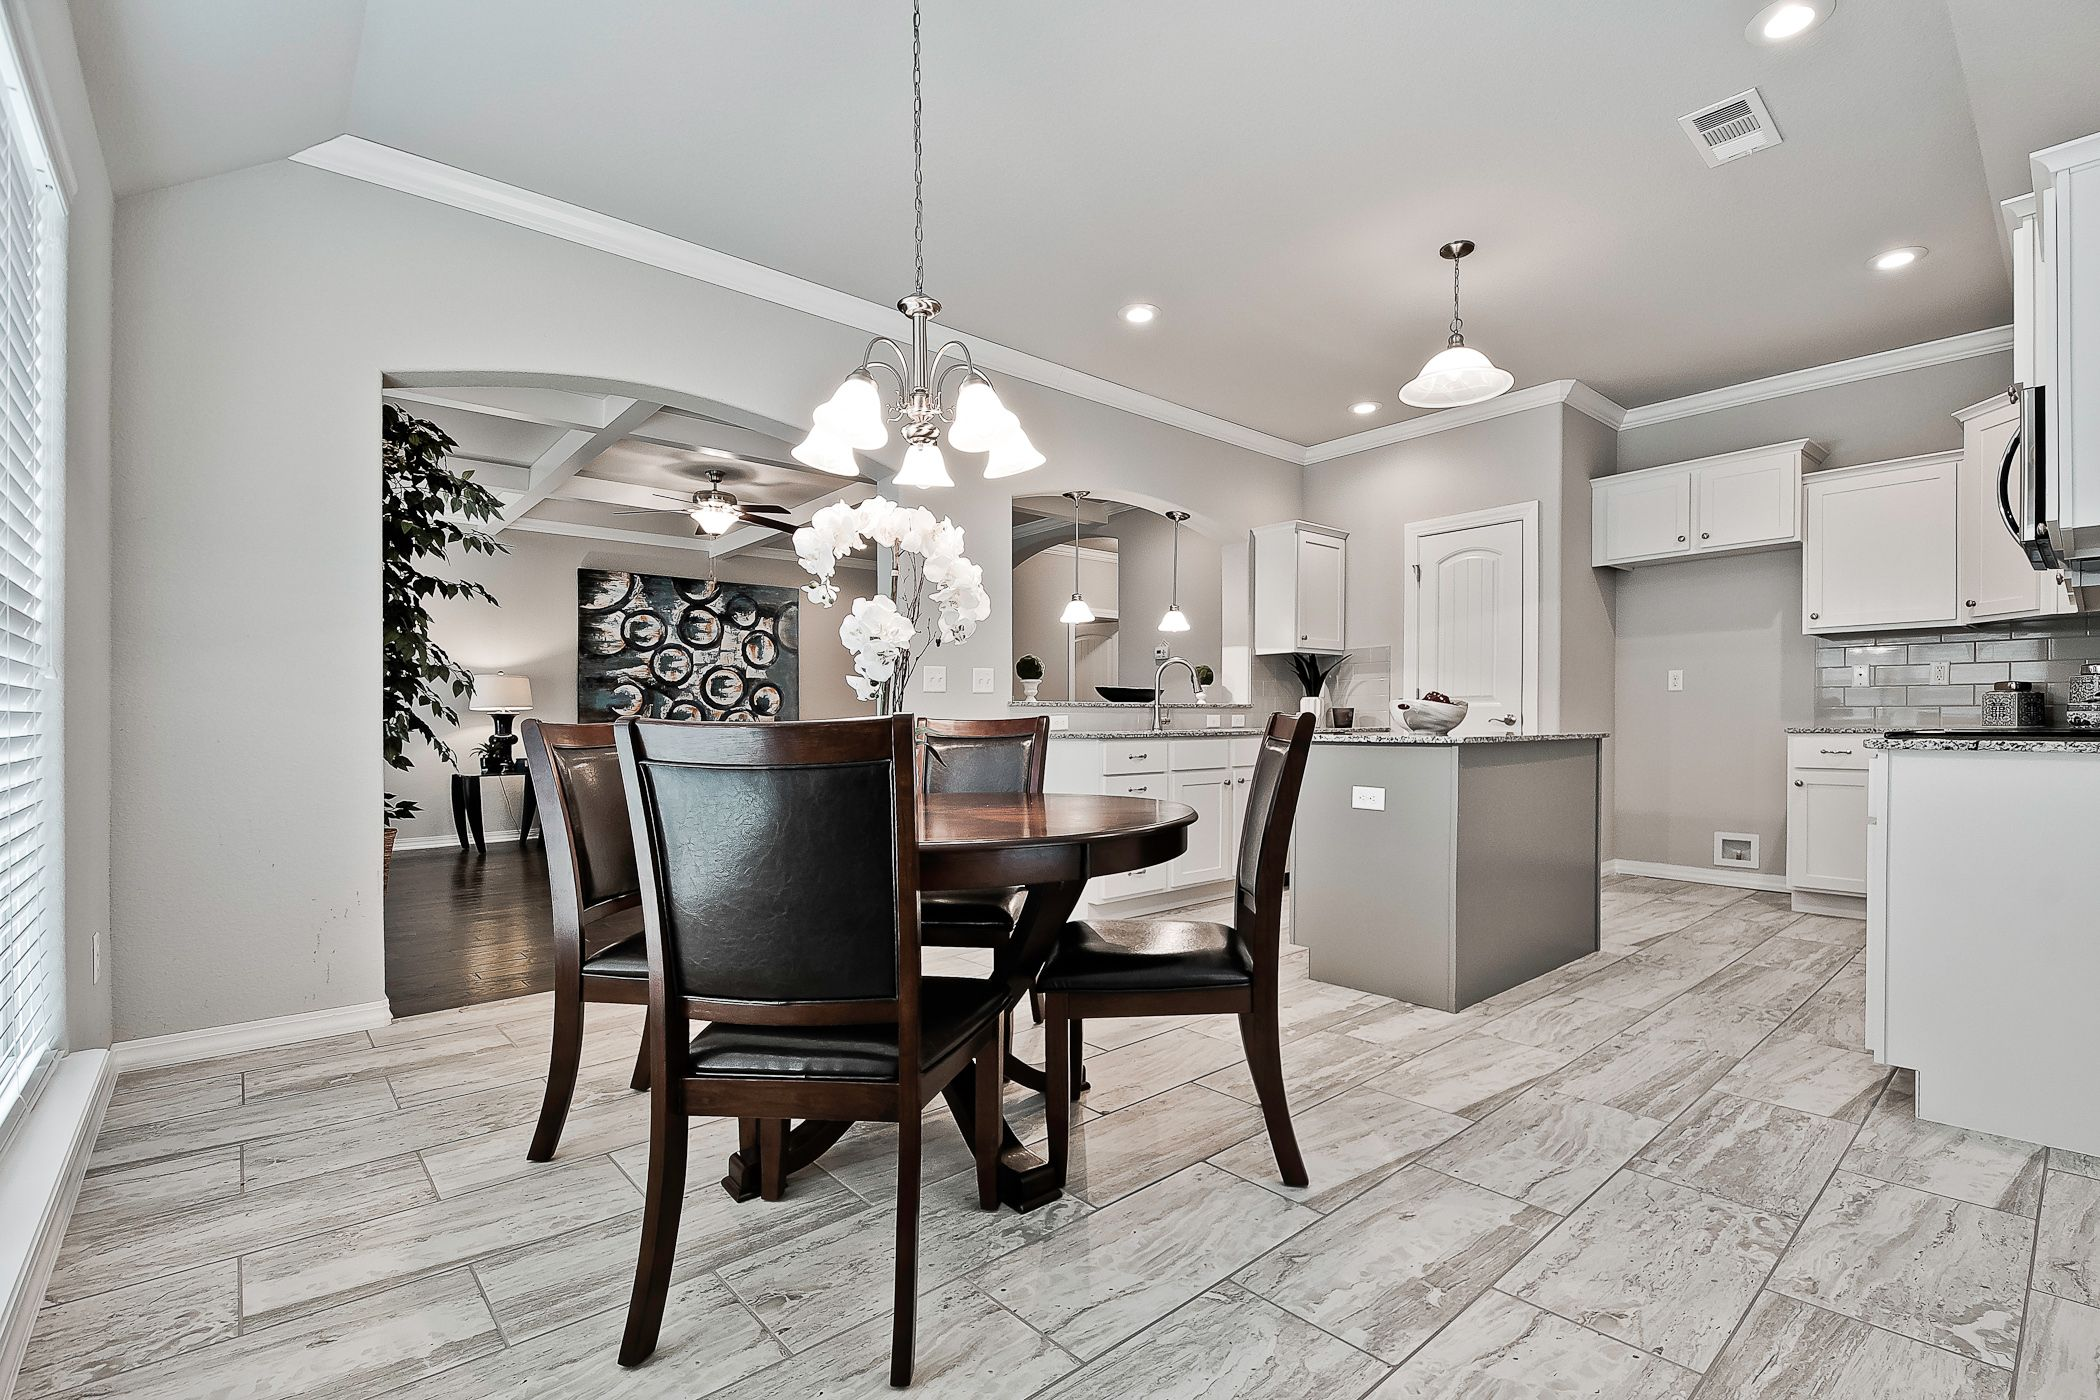 Kitchen featured in the Maple 1659 By Riverwood Homes - Arkansas in Fayetteville, AR